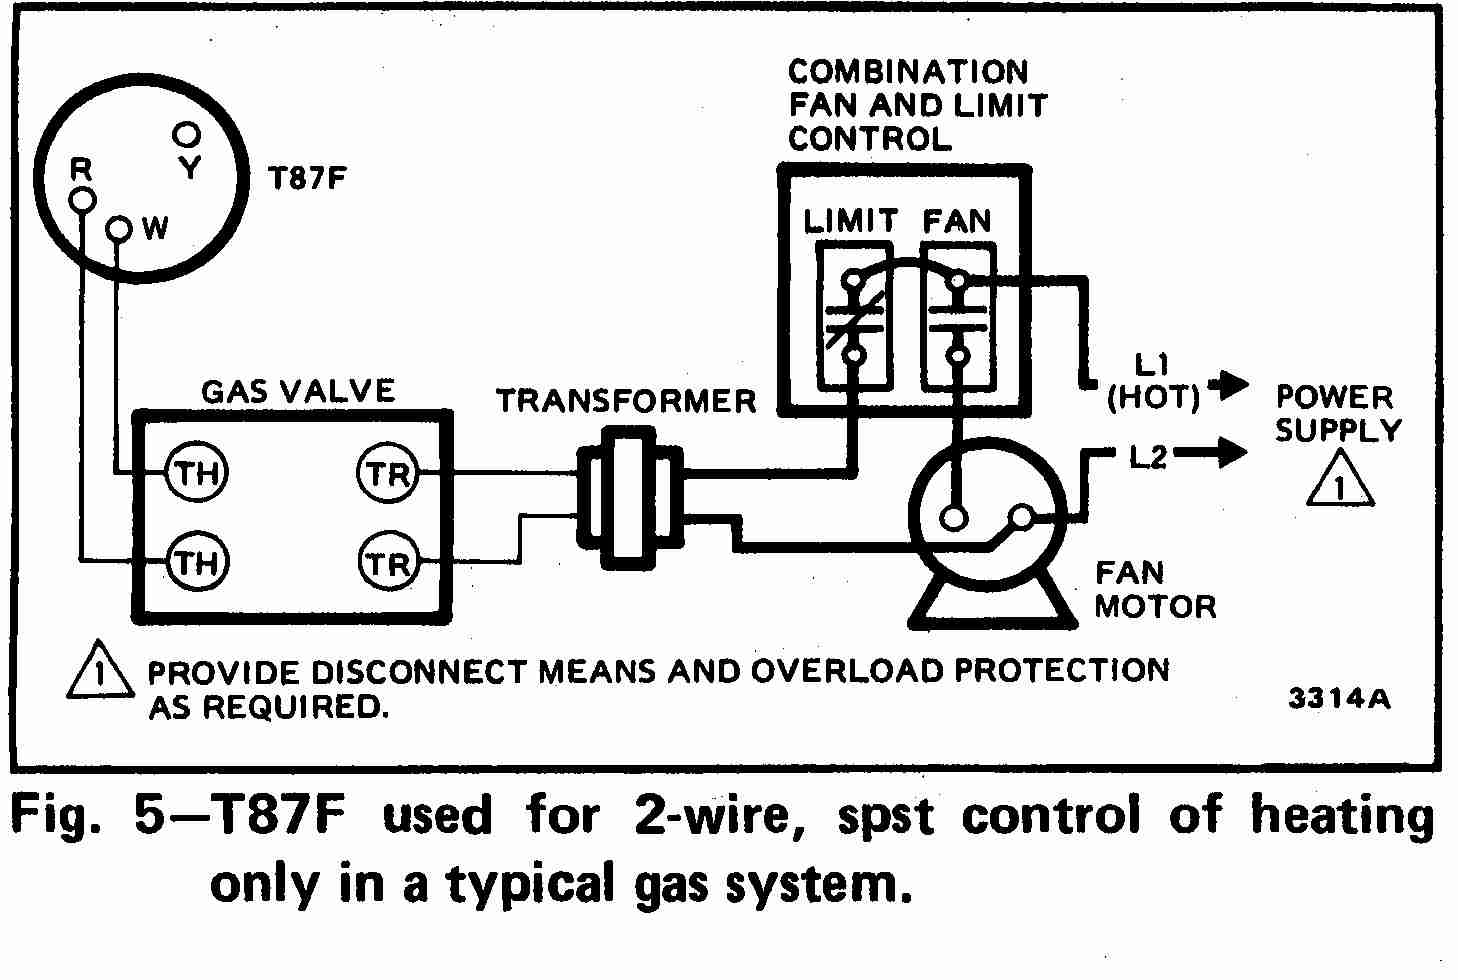 Thermostat Diagrams together with 3 Way Rotary Switch Wiring Diagram Fan as well Marley Baseboard Heater Wiring Diagram moreover 5uir0 Need Wall Mount Thermostat Use Fahrenheat Electric besides Does Nest Work With Zoned Systems. on 2 pole thermostat wiring diagram